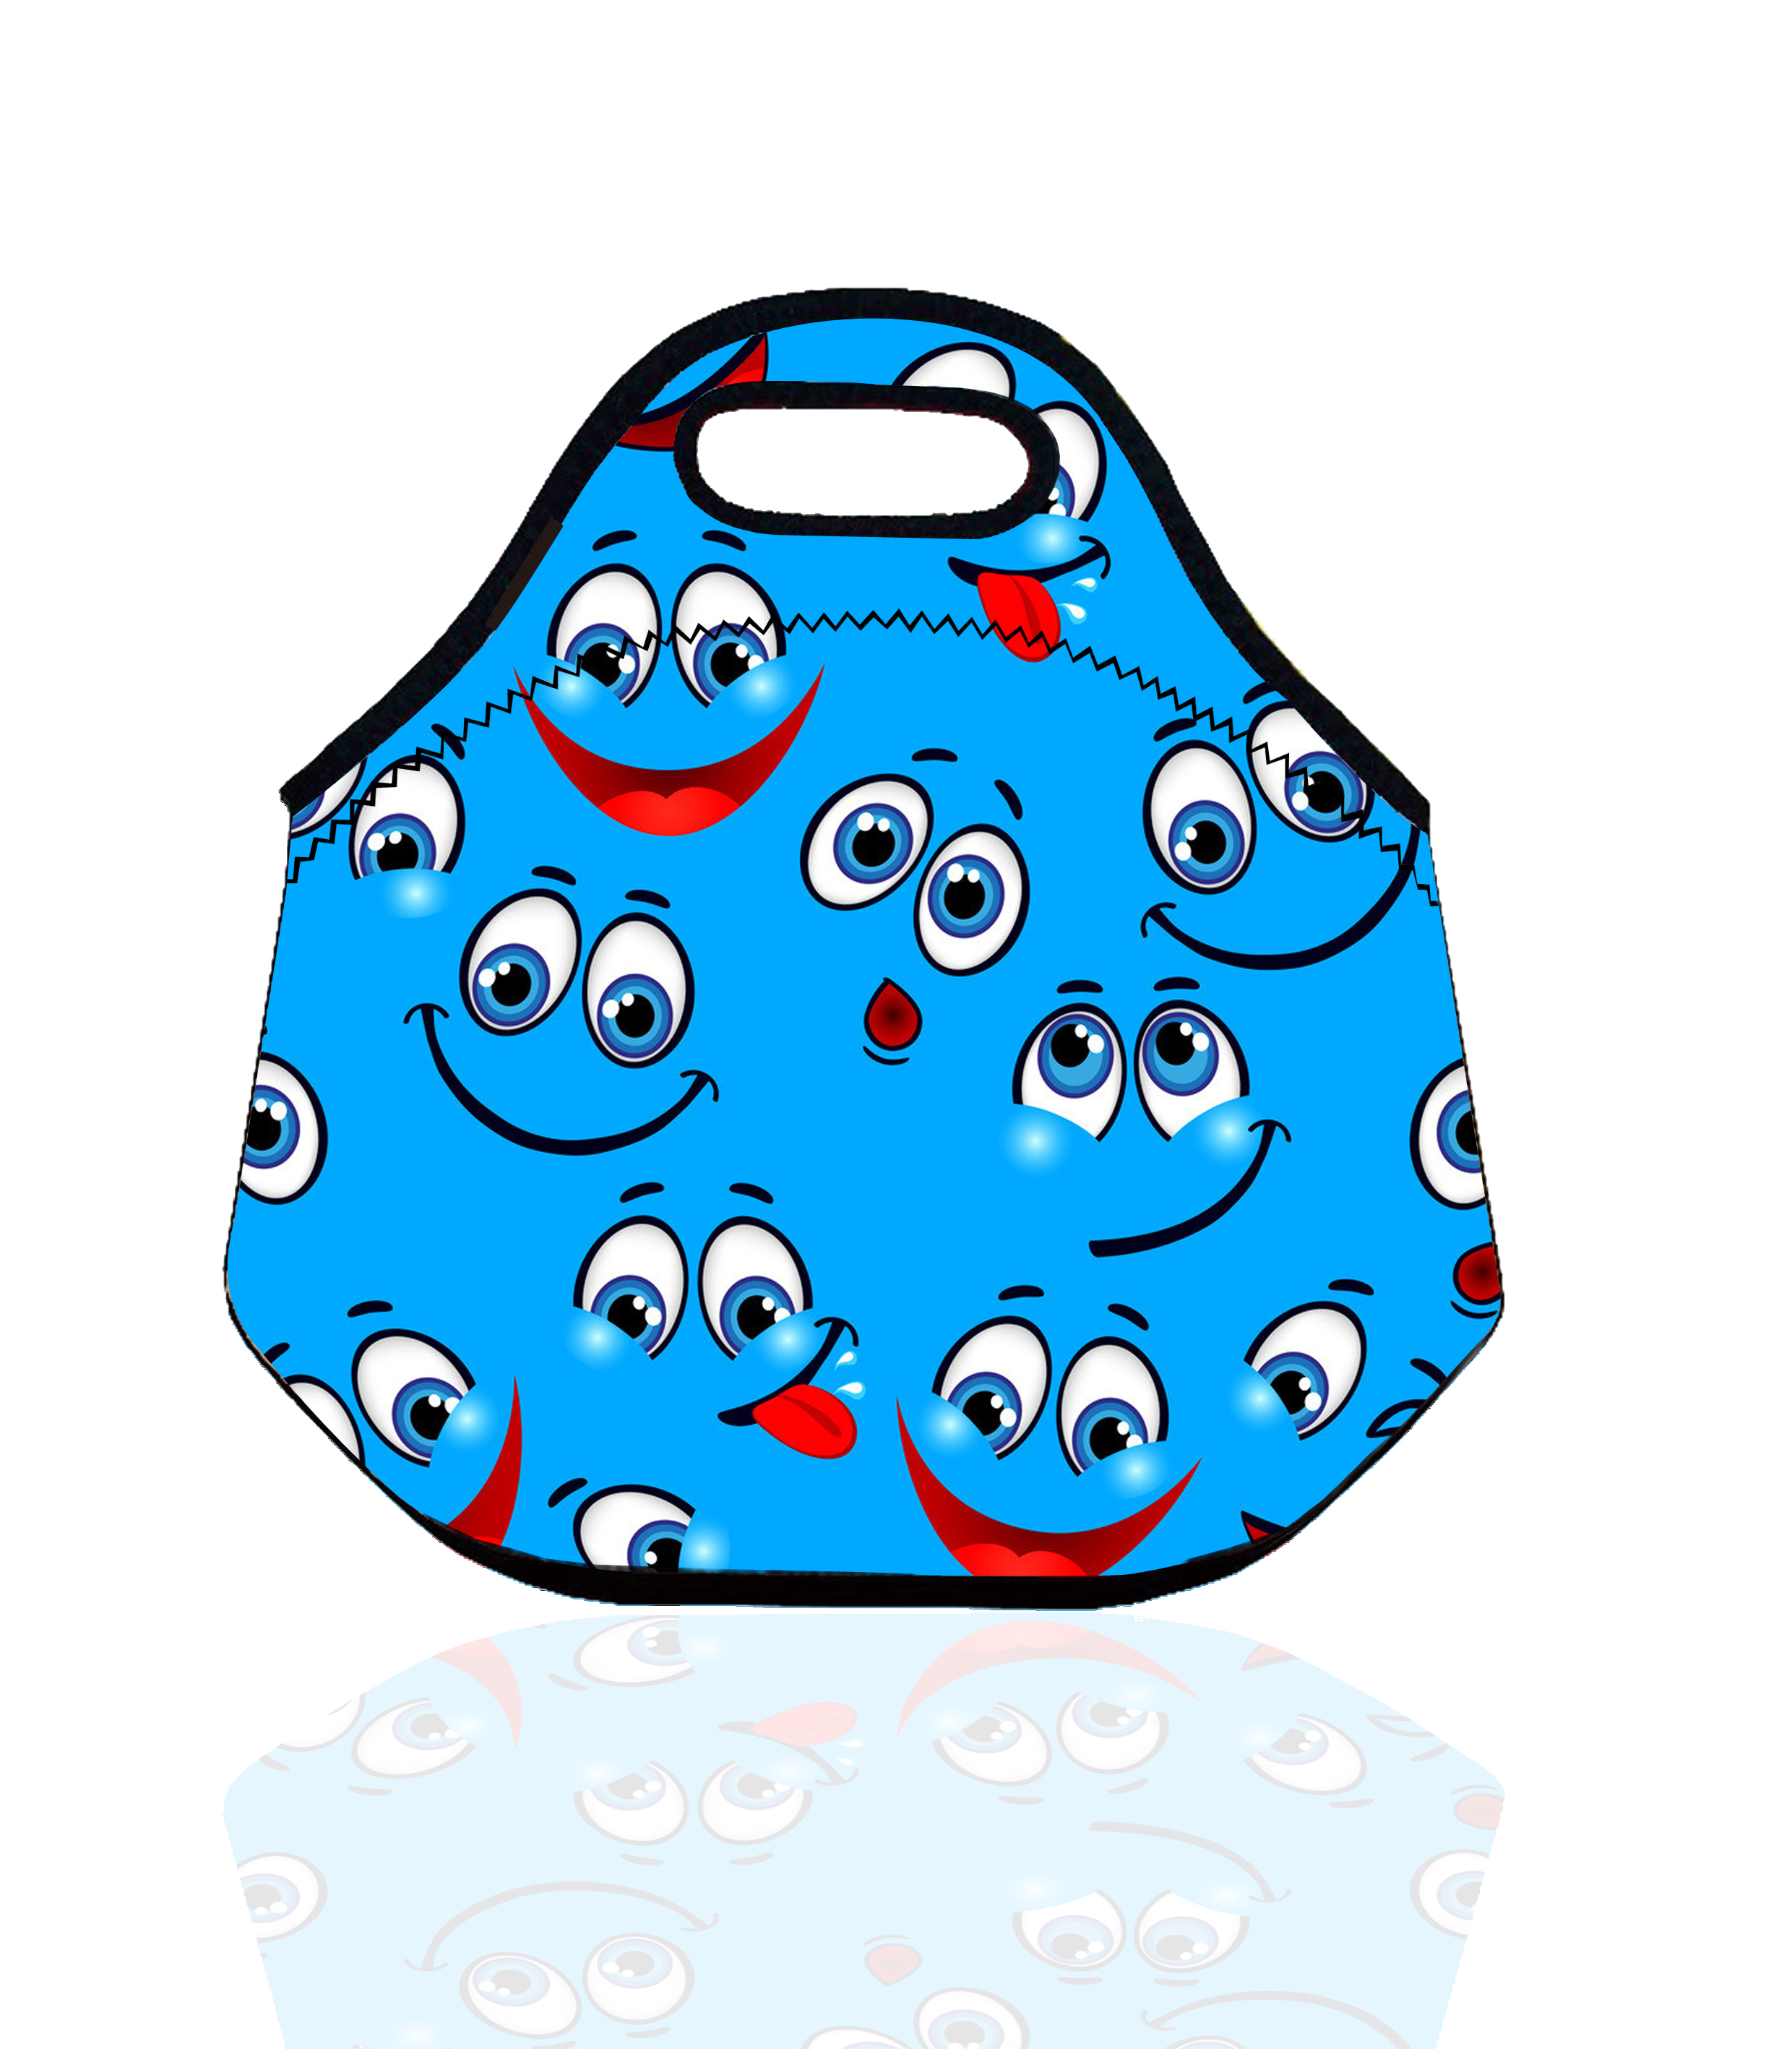 Smile Thermal Insulated Waterproof Lunch Bag for Women Kids Tote Lunch Storage Picnic Bag Pouch vacuum Box bolsa termica